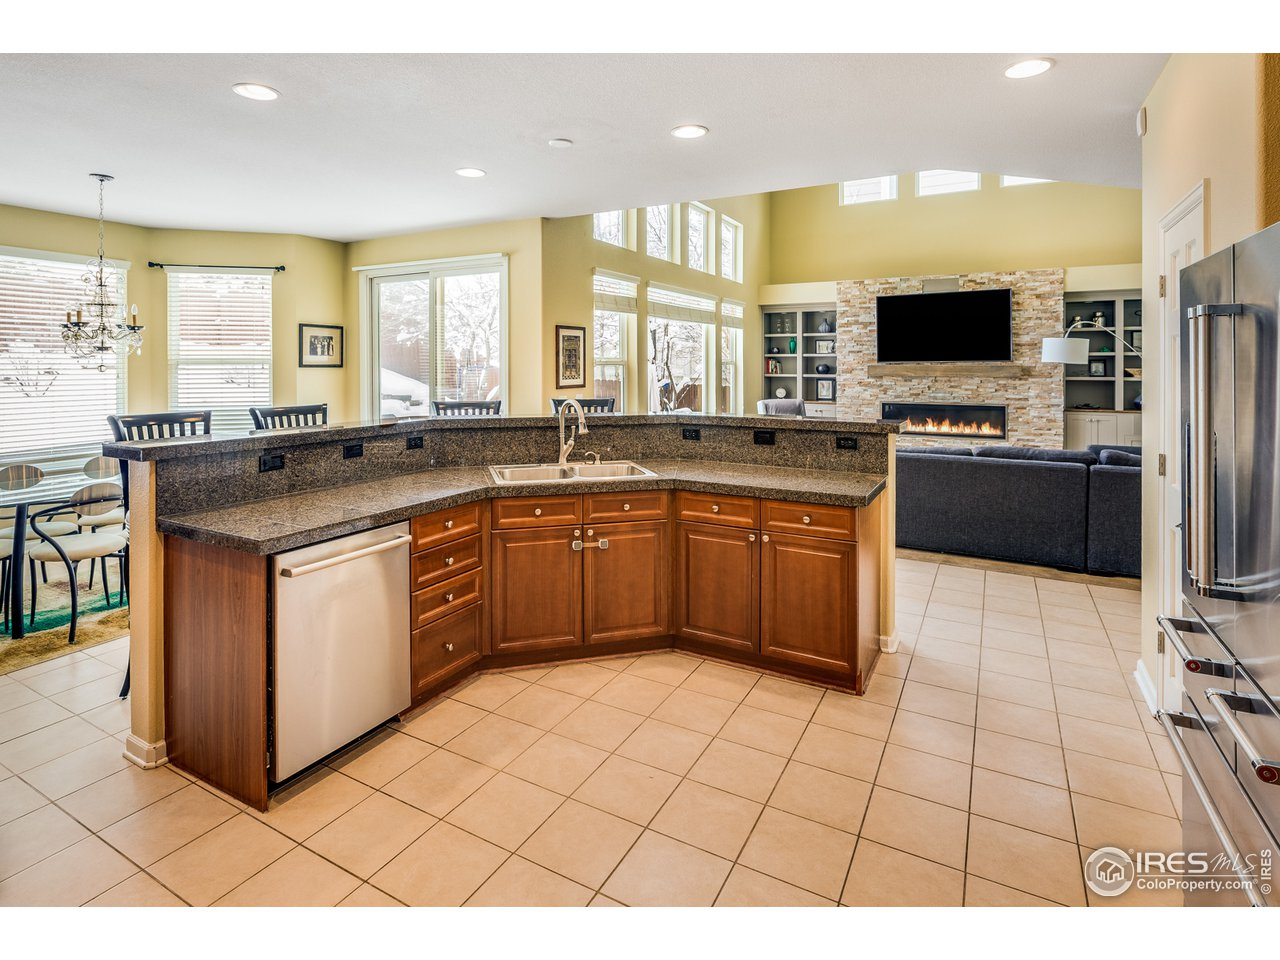 Large island in center of kitchen